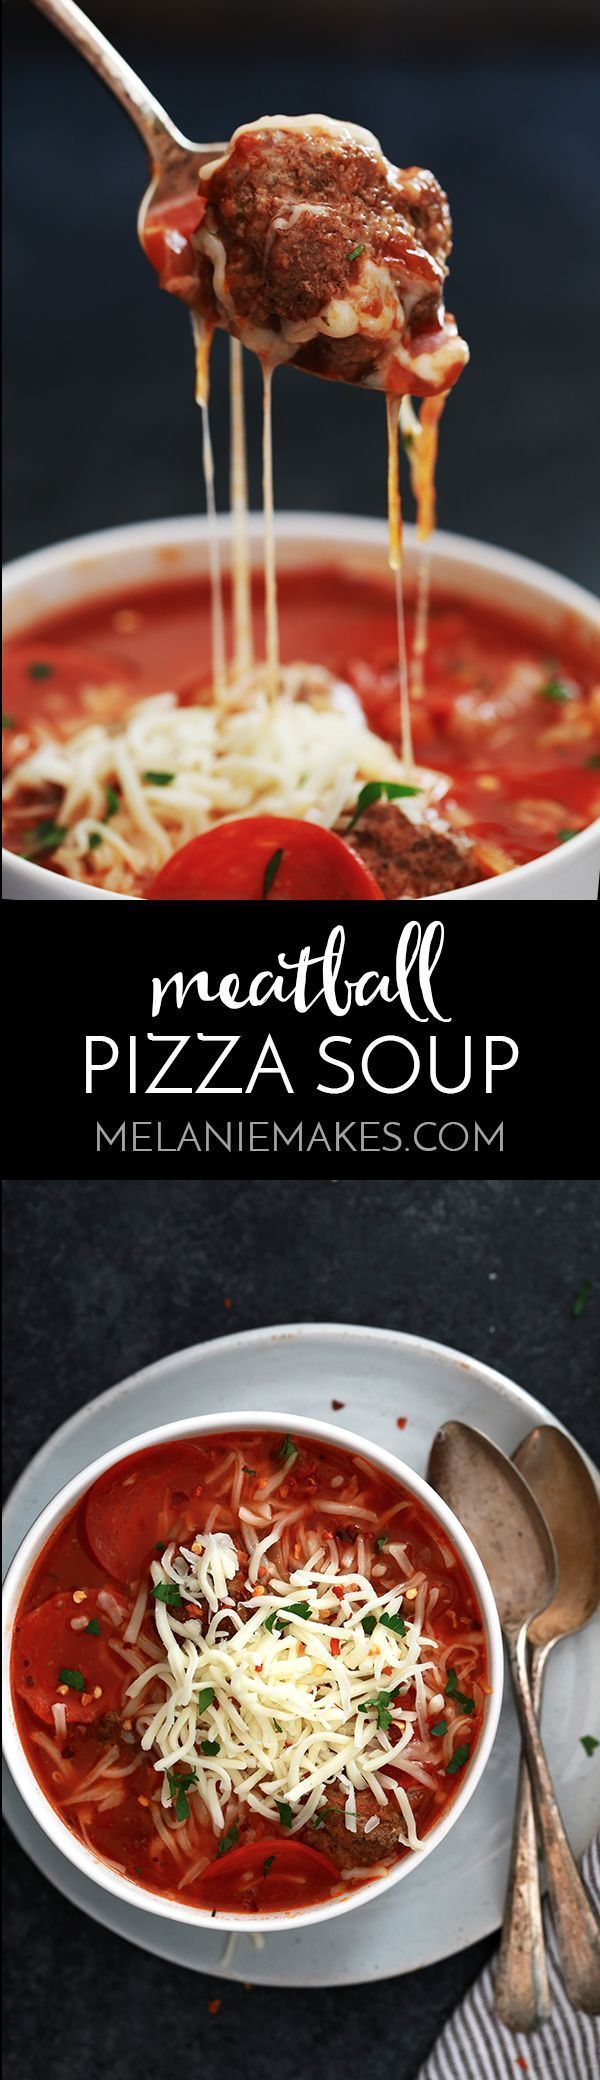 Thanks to a kitchen shortcut, my Meatball Pizza Soup takes just ten minutes to prepare. Meatballs, pepperoni, onions, green peppers and mushrooms come together to create a comforting soup that combines two of your favorite Italian dinners.